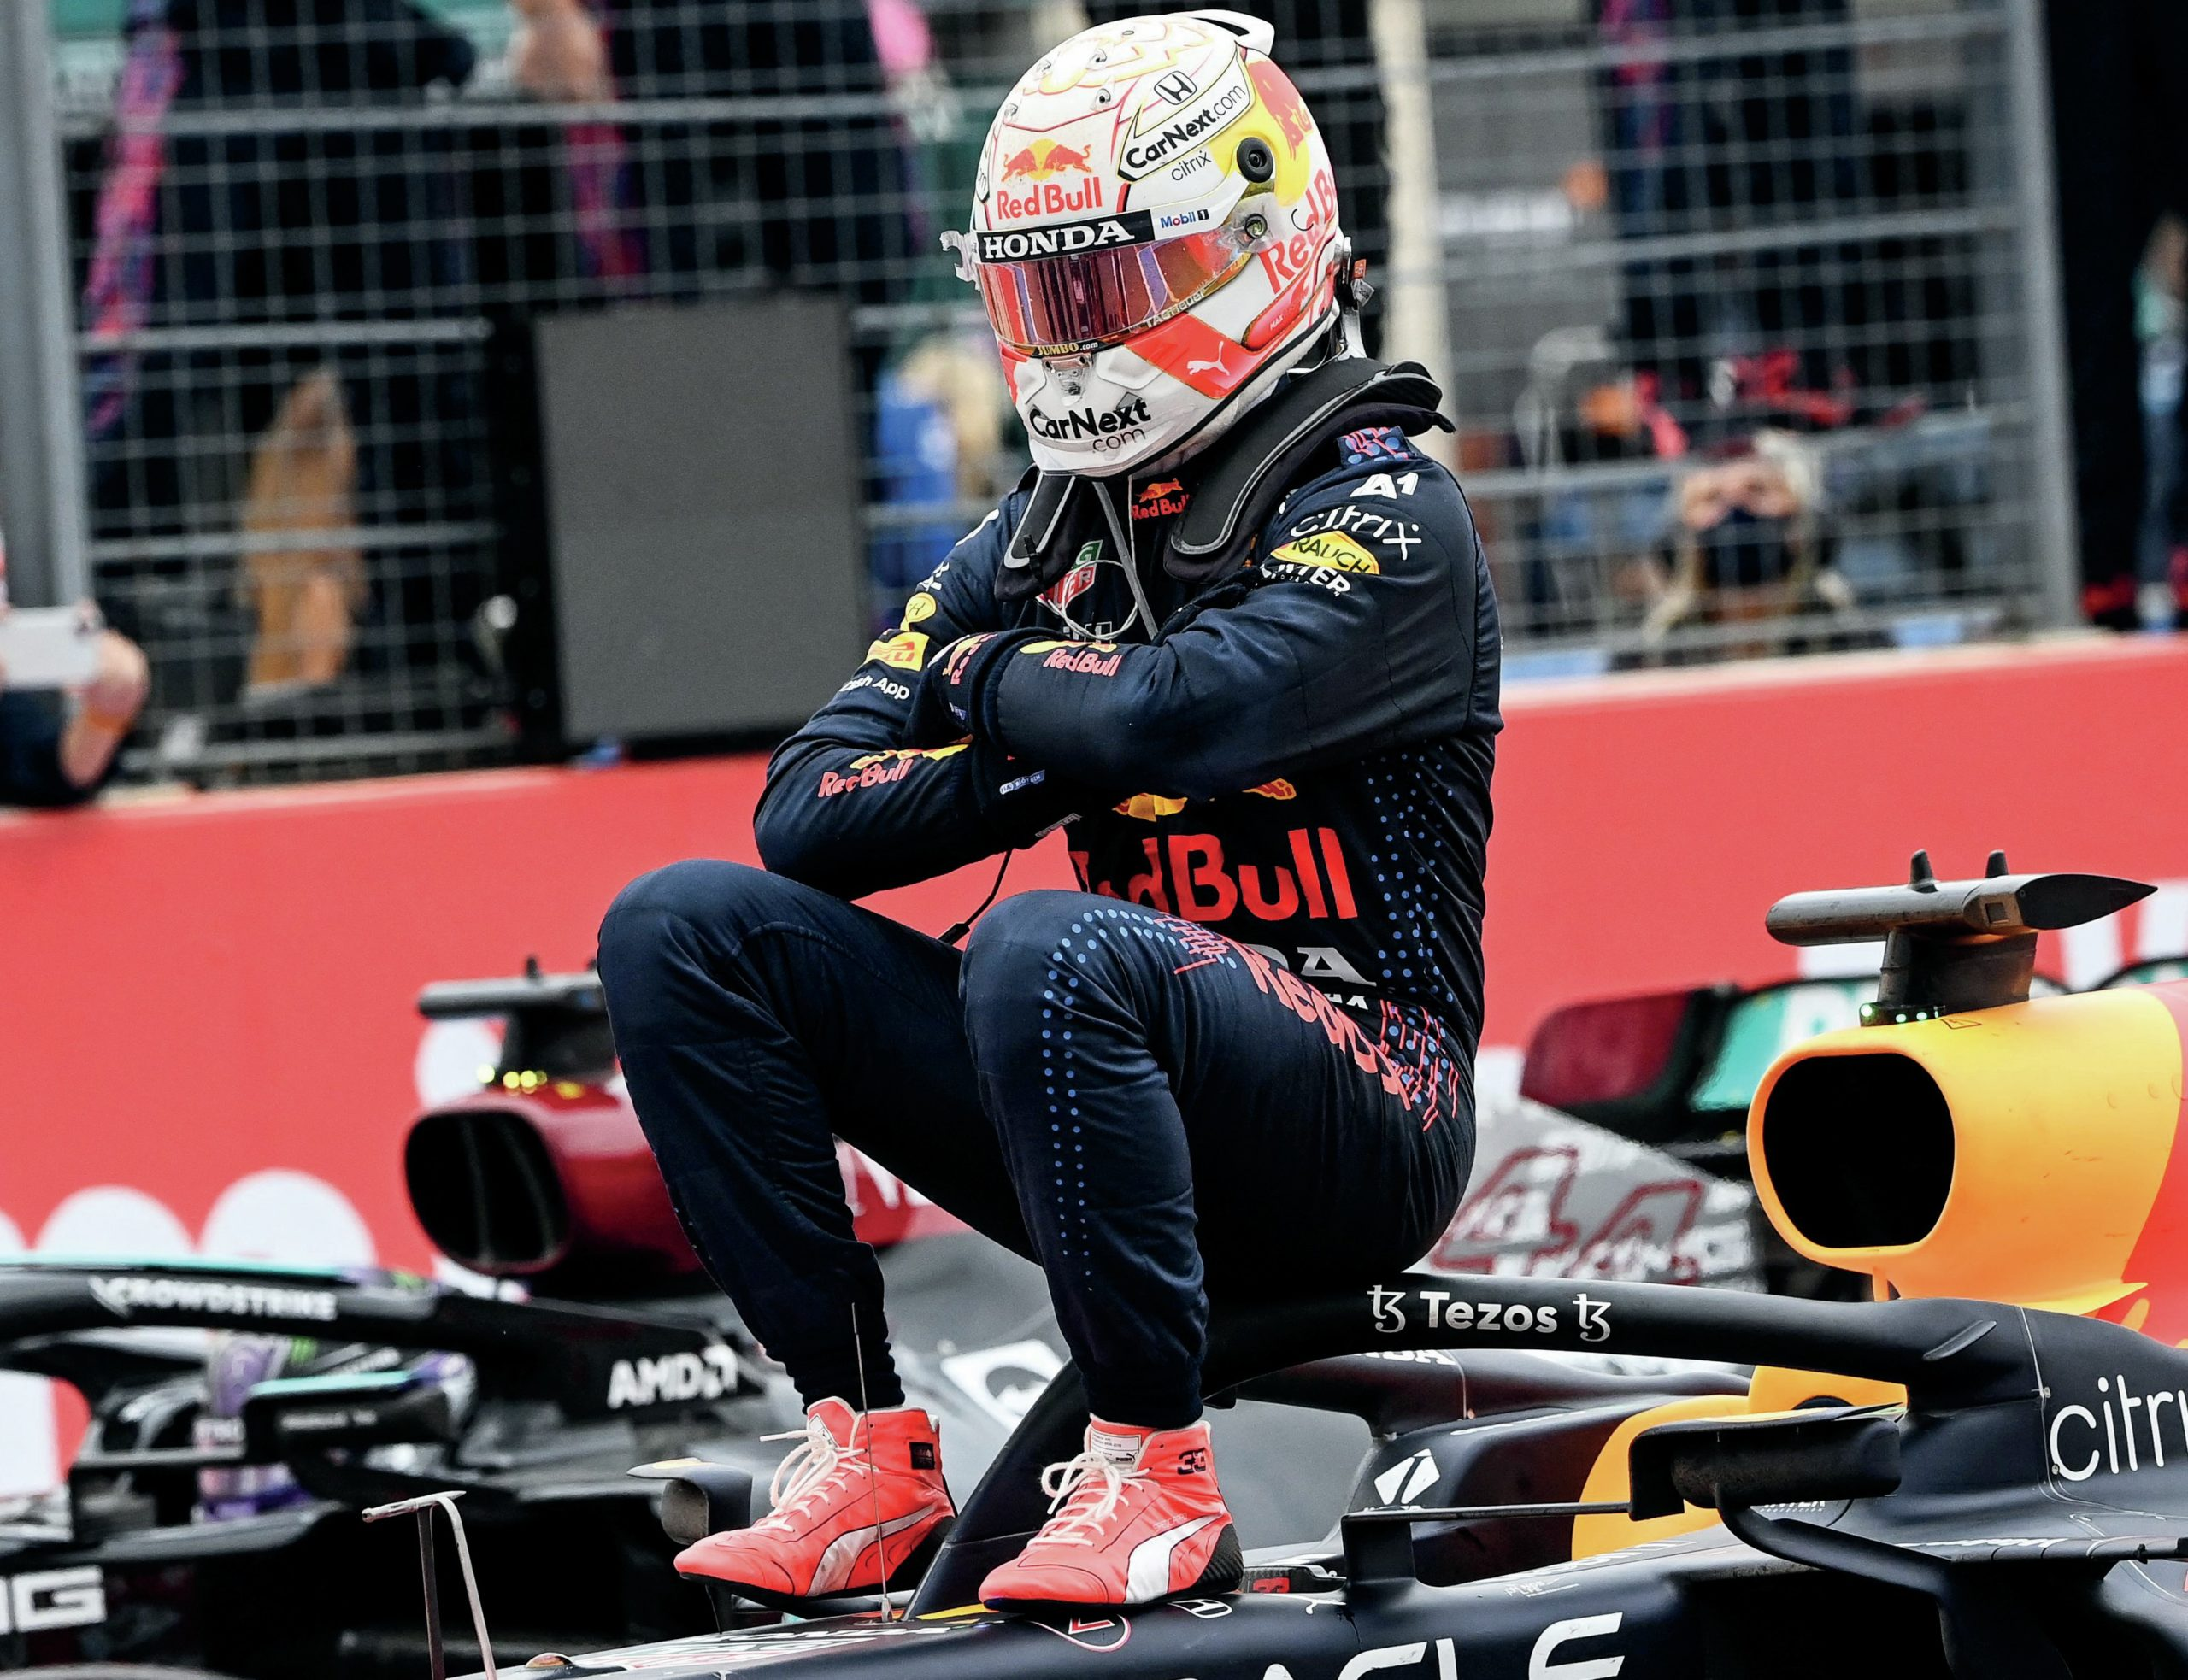 Max Verstappen sits on his Red Bull after winning the 2021 French Grand Prix